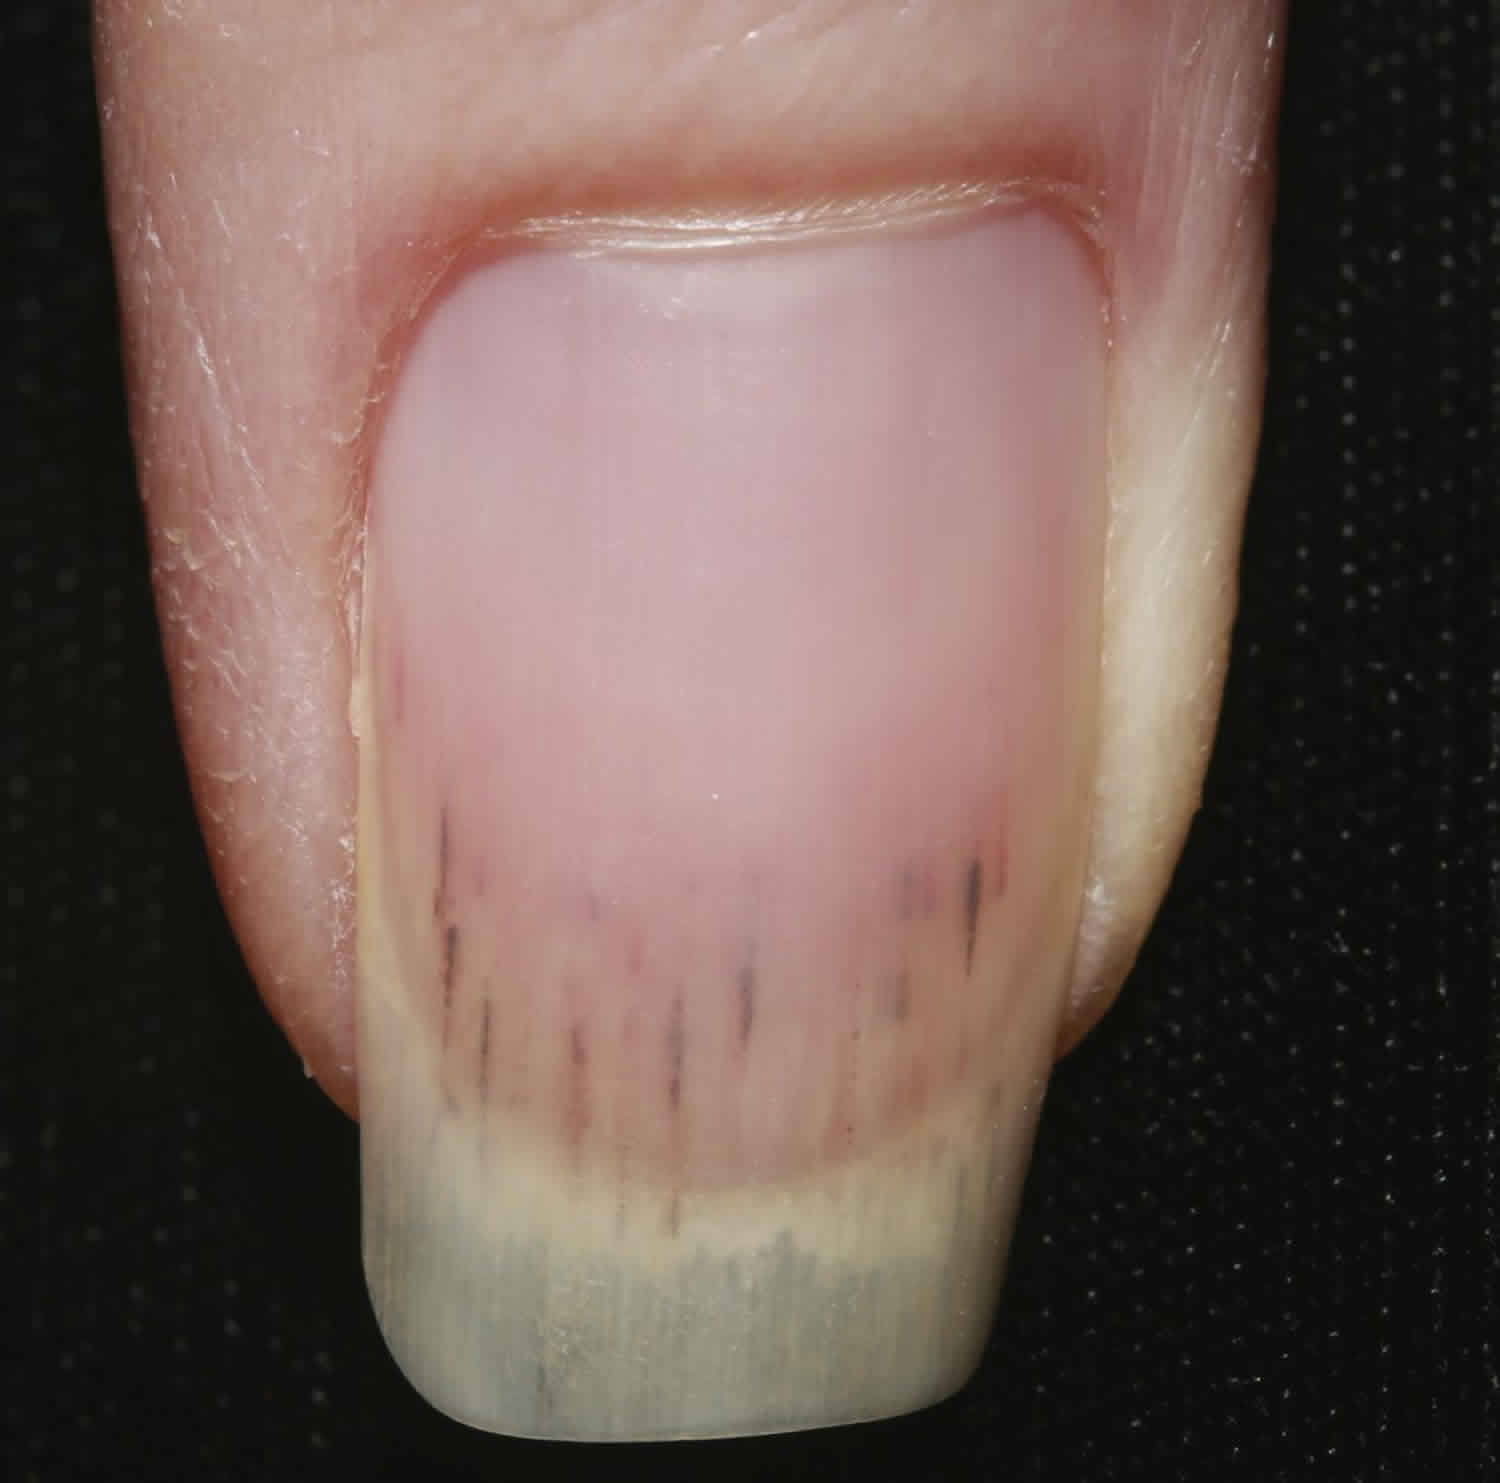 Splinter hemorrhages causes, what it looks like, diagnosis